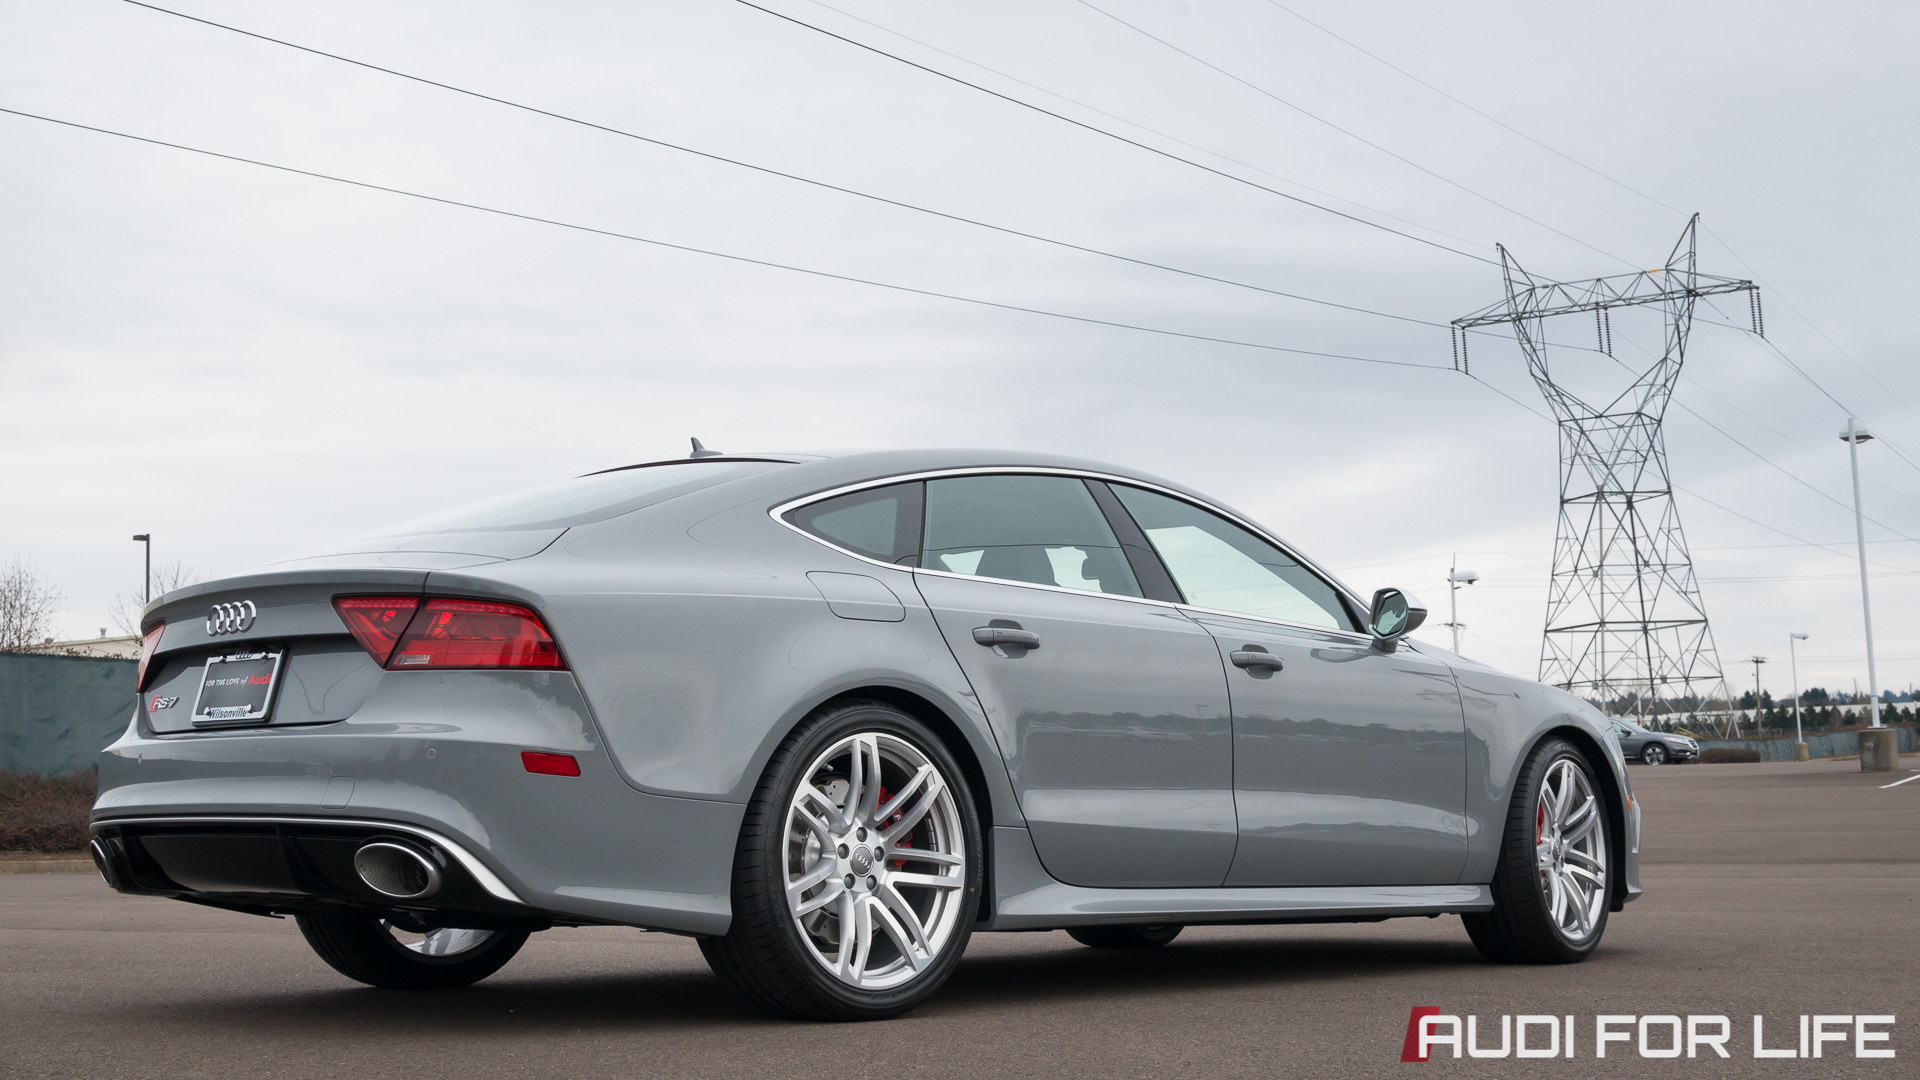 Nardo Gray Audi Rs 7 Wallpaper Audi For Life